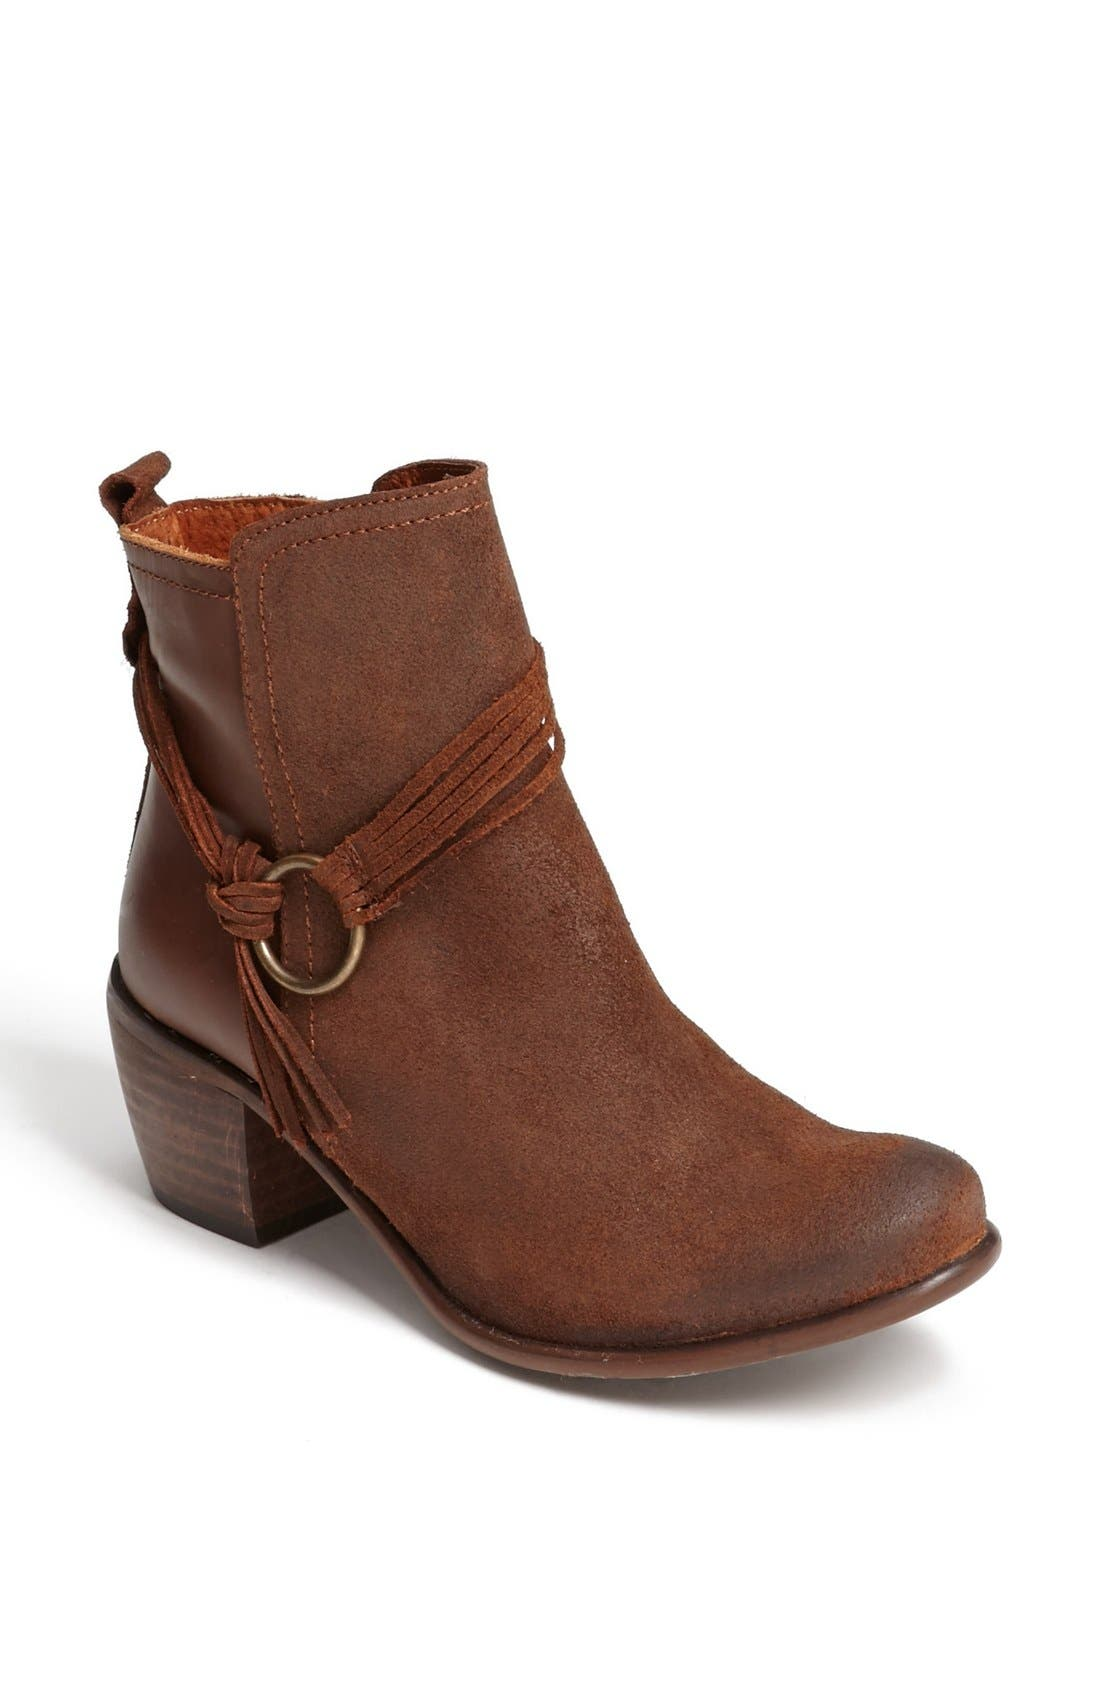 Alternate Image 1 Selected - SIXTYSEVEN 'Bailey' Bootie